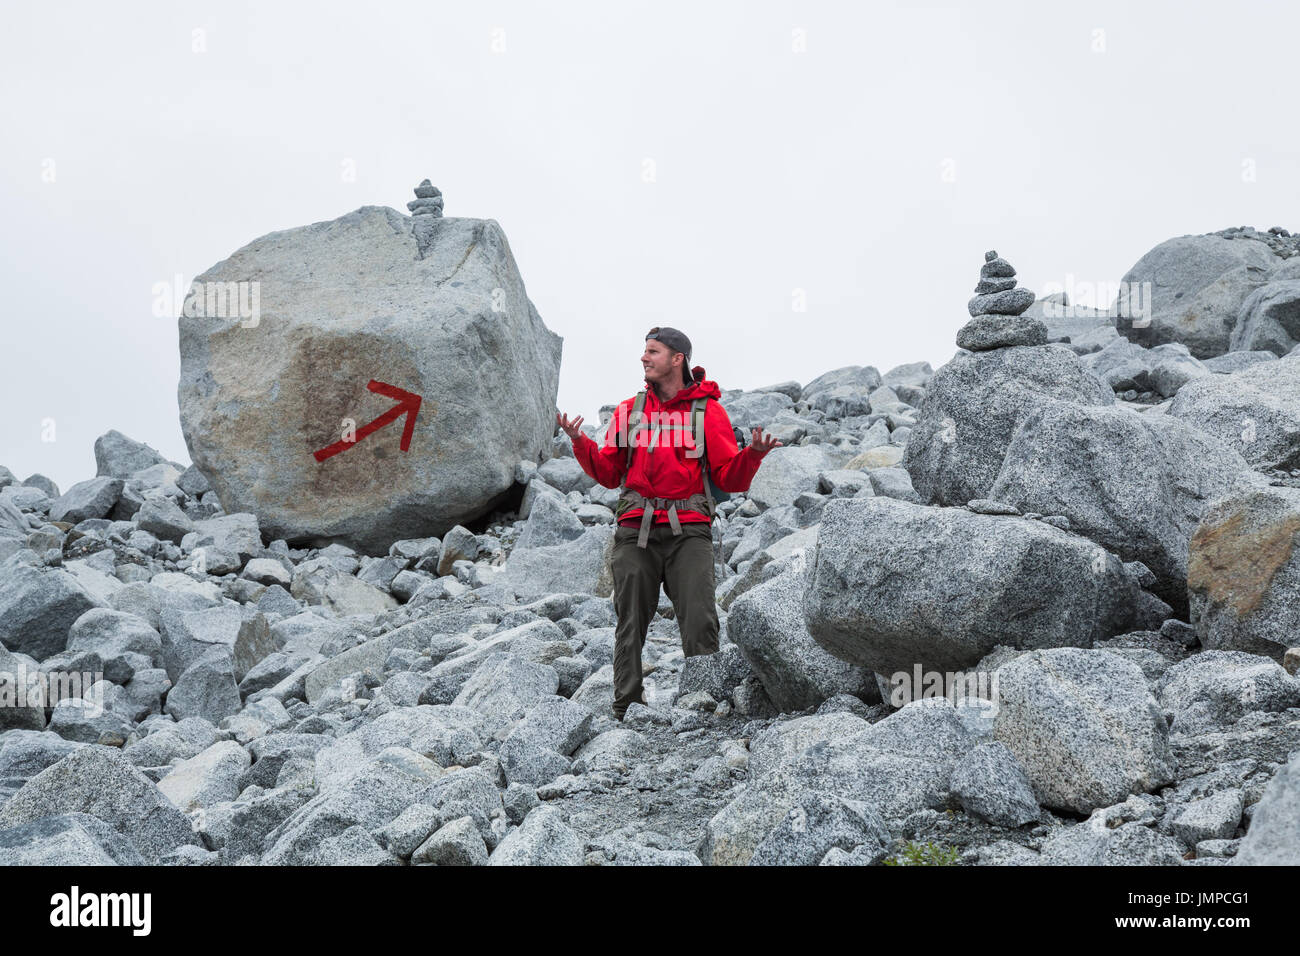 The trail is marked with two large cairns and a giant red arrow painted on a boulder, but this man appears to be lost. Grey, cloudy sky overhead - Stock Image